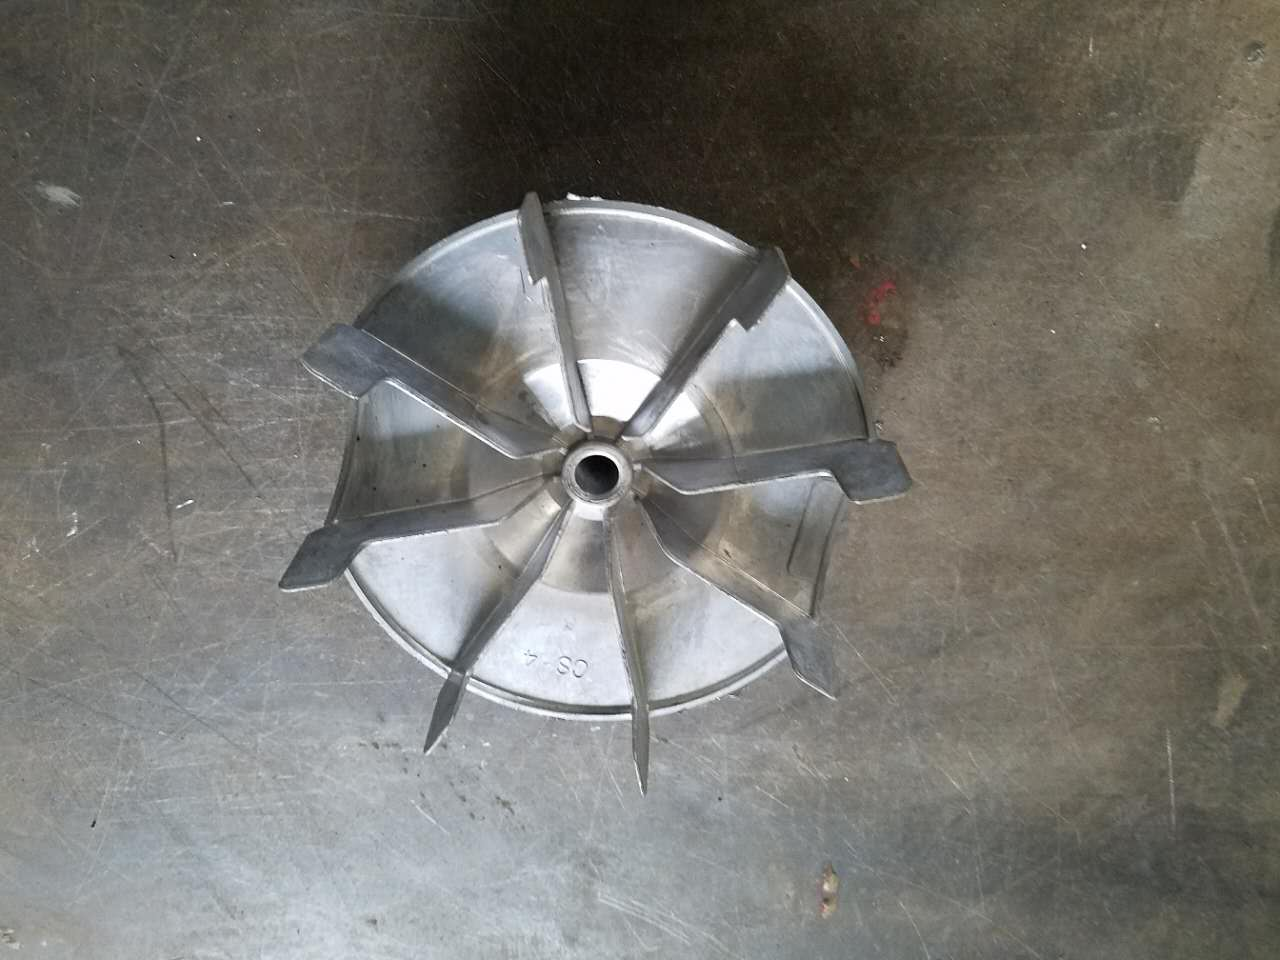 Cnc machined small parts for Damler, AUDI, TOYOTA car parts or air conditioner